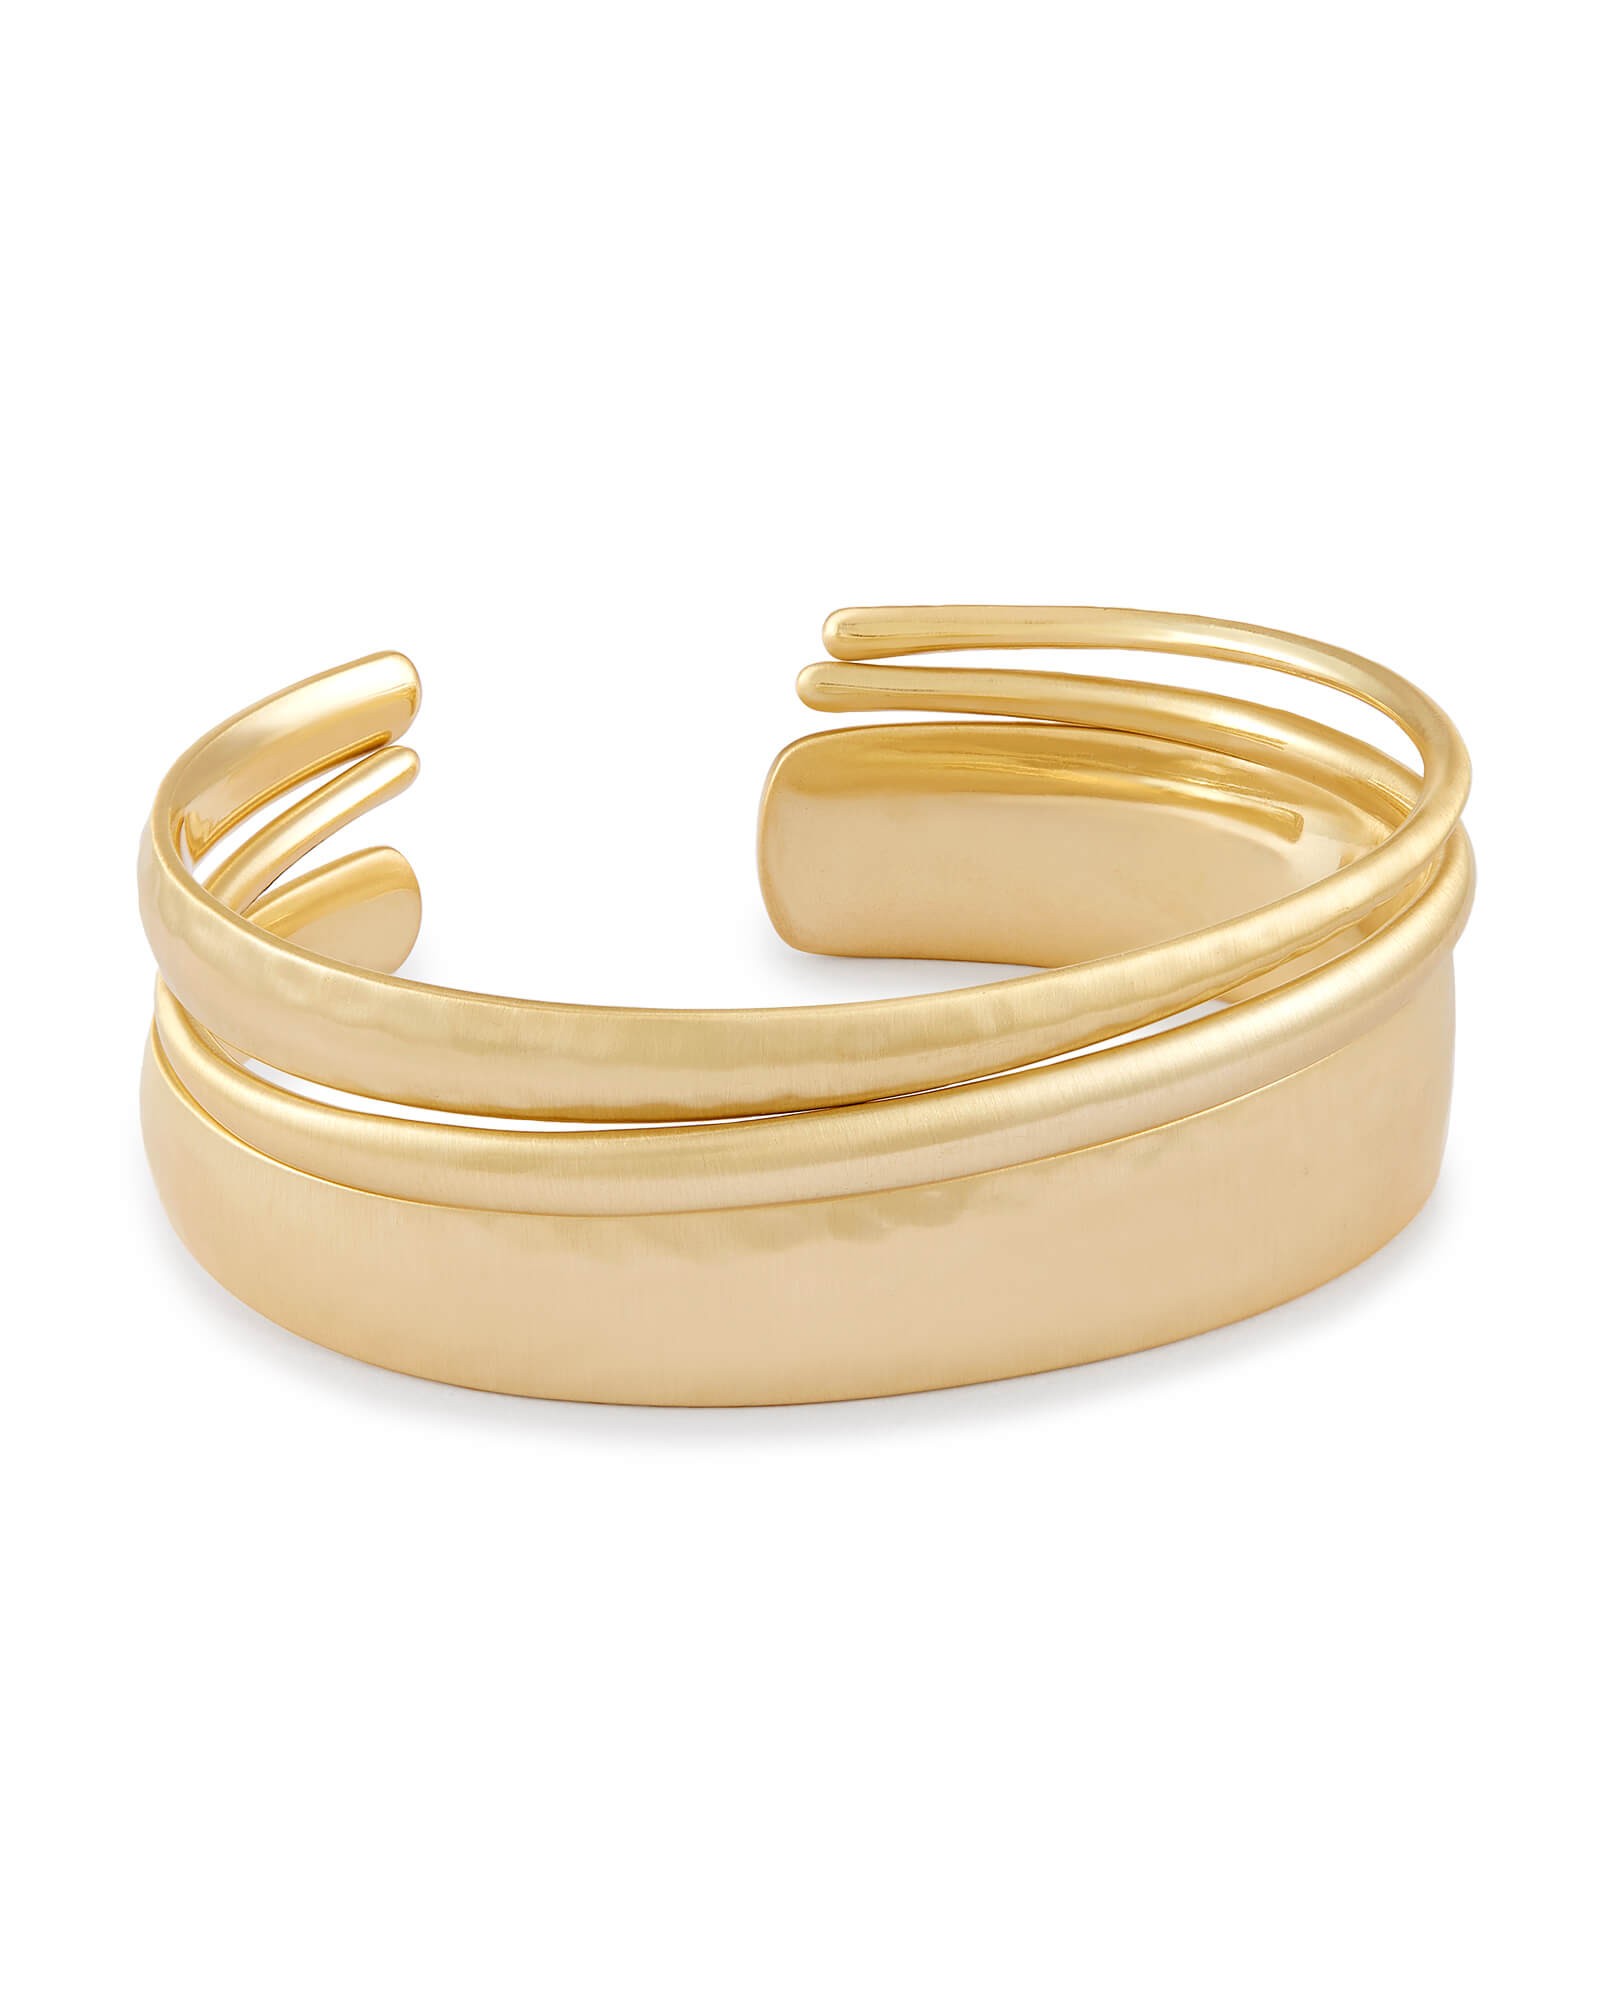 Tiana Pinch Bracelet Set in Gold